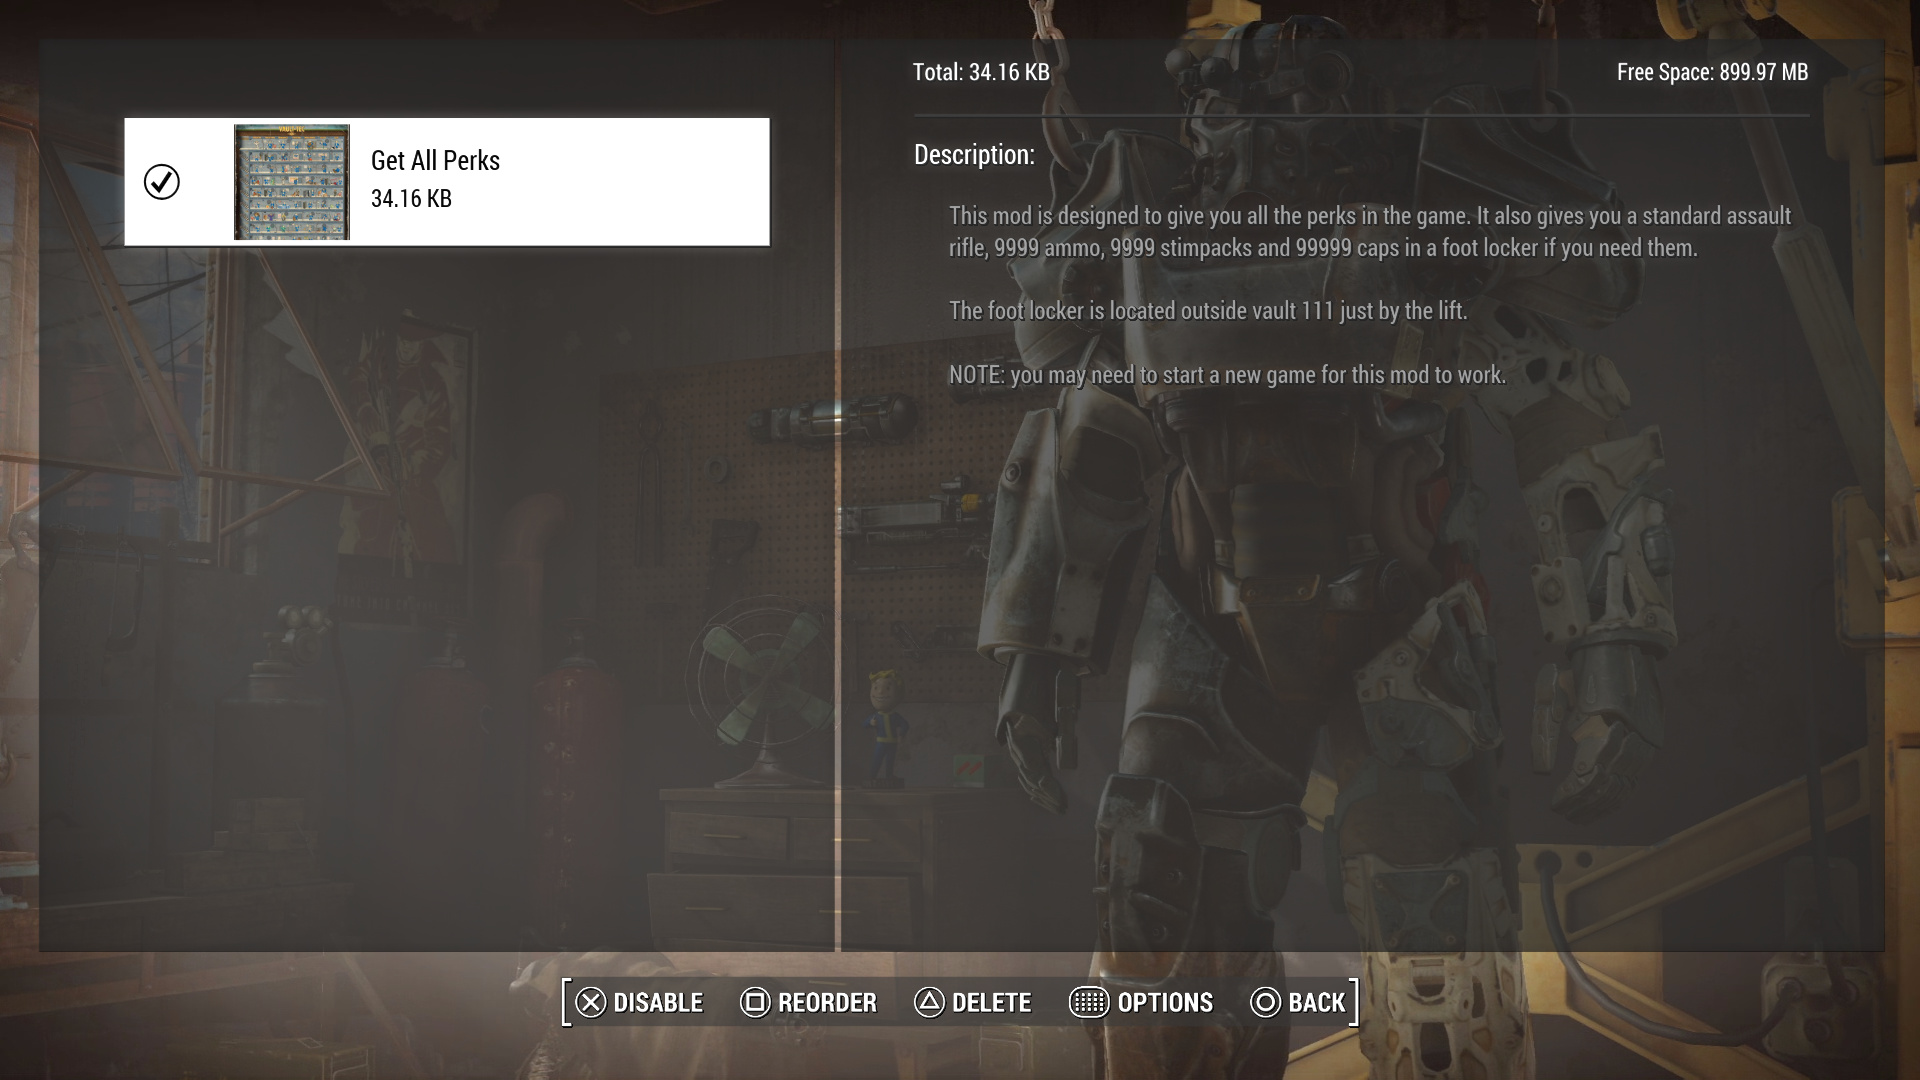 How to Download and Install Fallout 4 Mods on PS4 - Guide